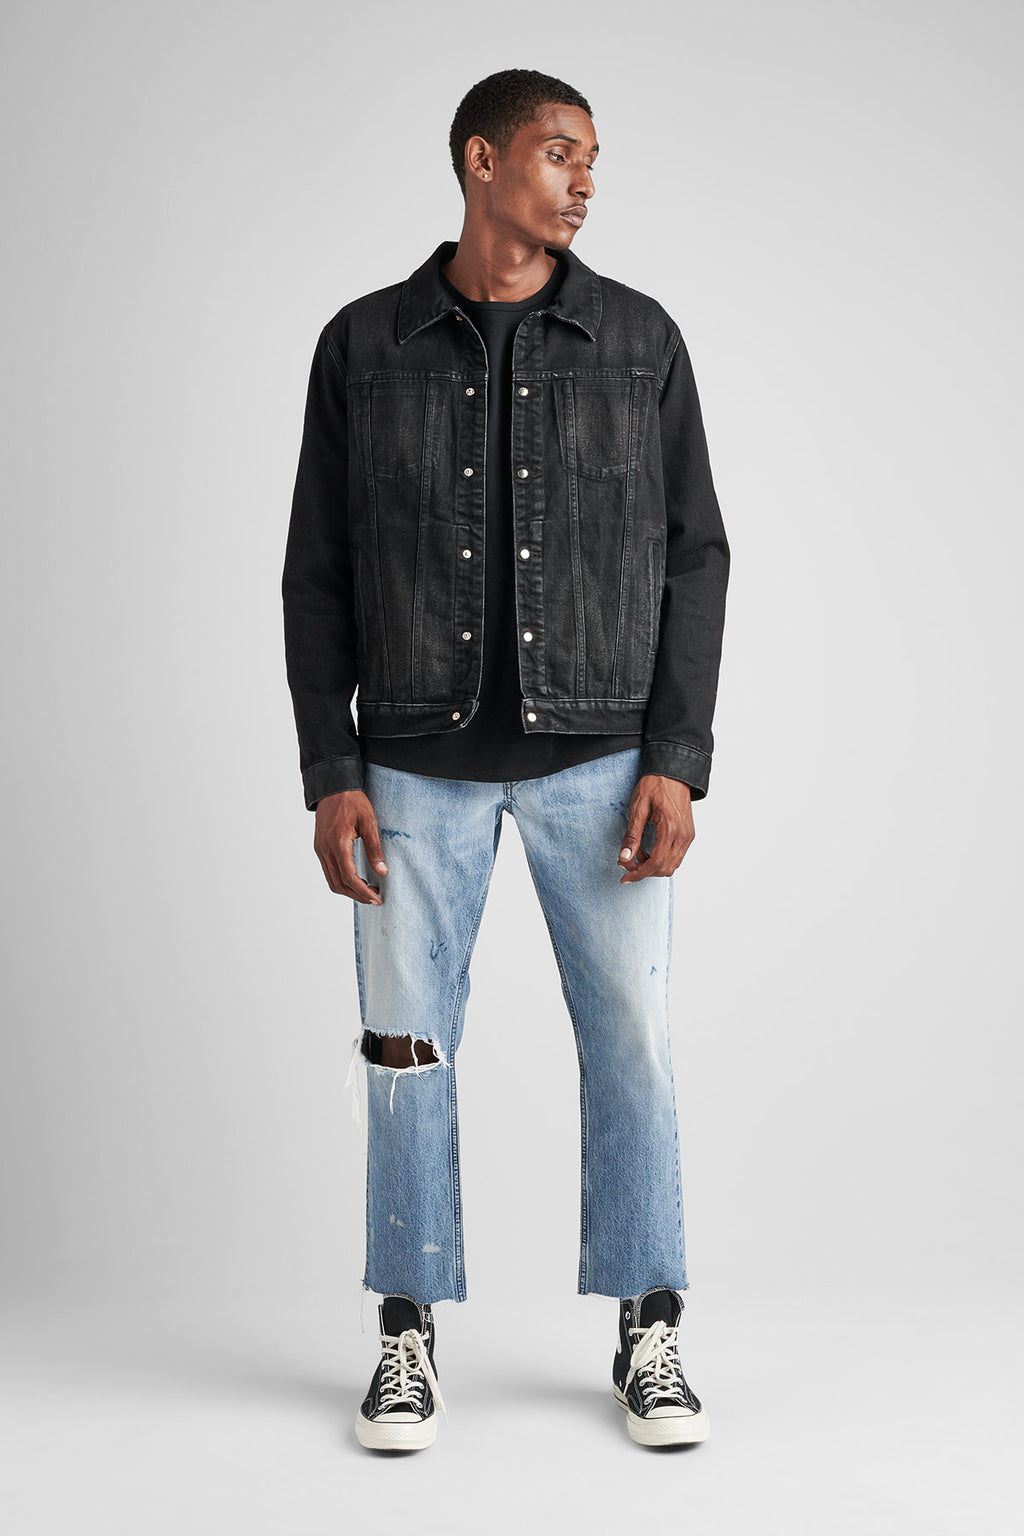 DONOVAN DENIM JACKET - WRIGHT - Image 1